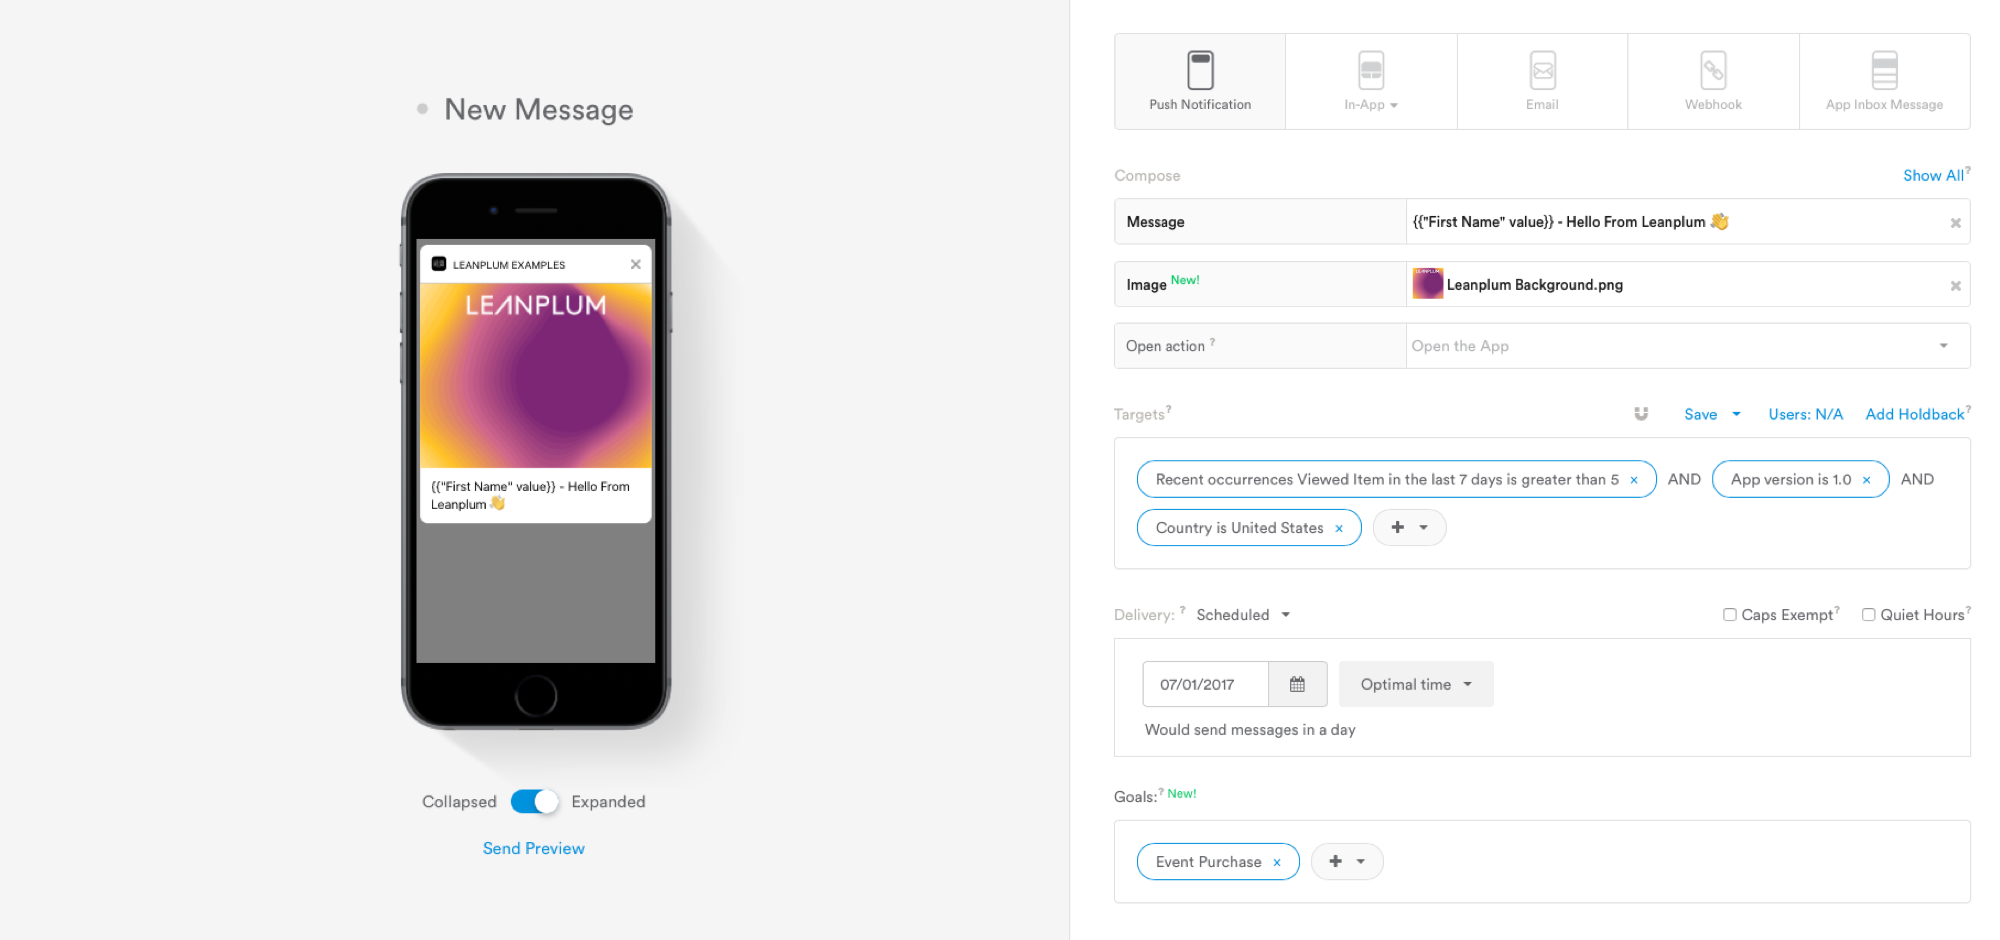 Reach users via mobile push notifications, email, web notifications, in-app messages, app inbox messages, and webhooks